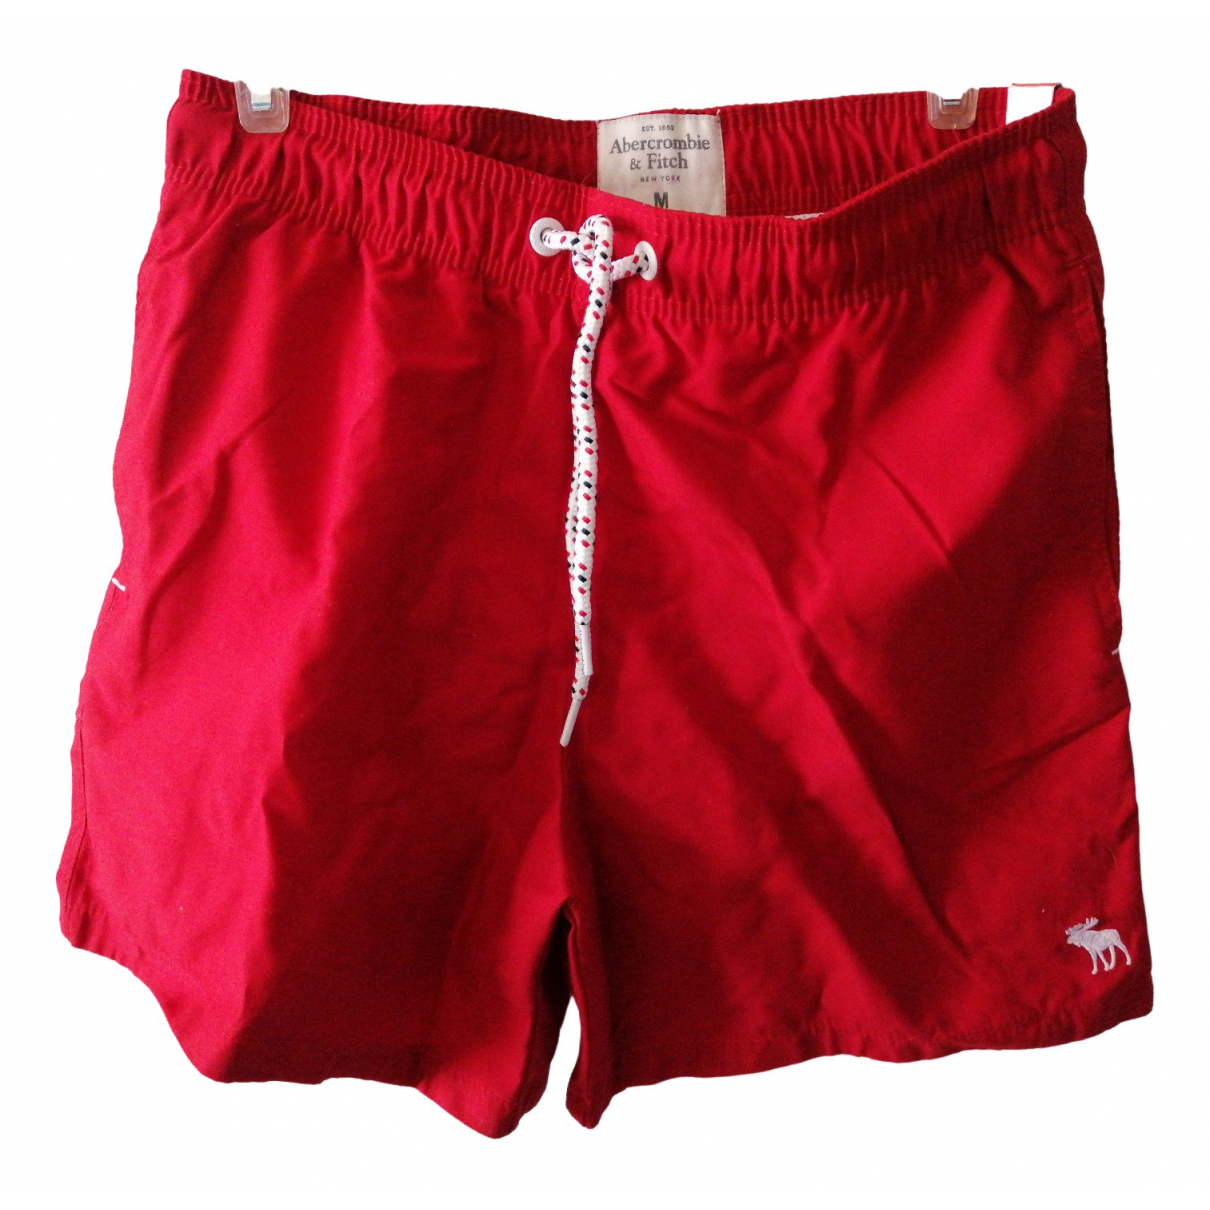 Abercrombie & Fitch - Bain   pour homme - rouge